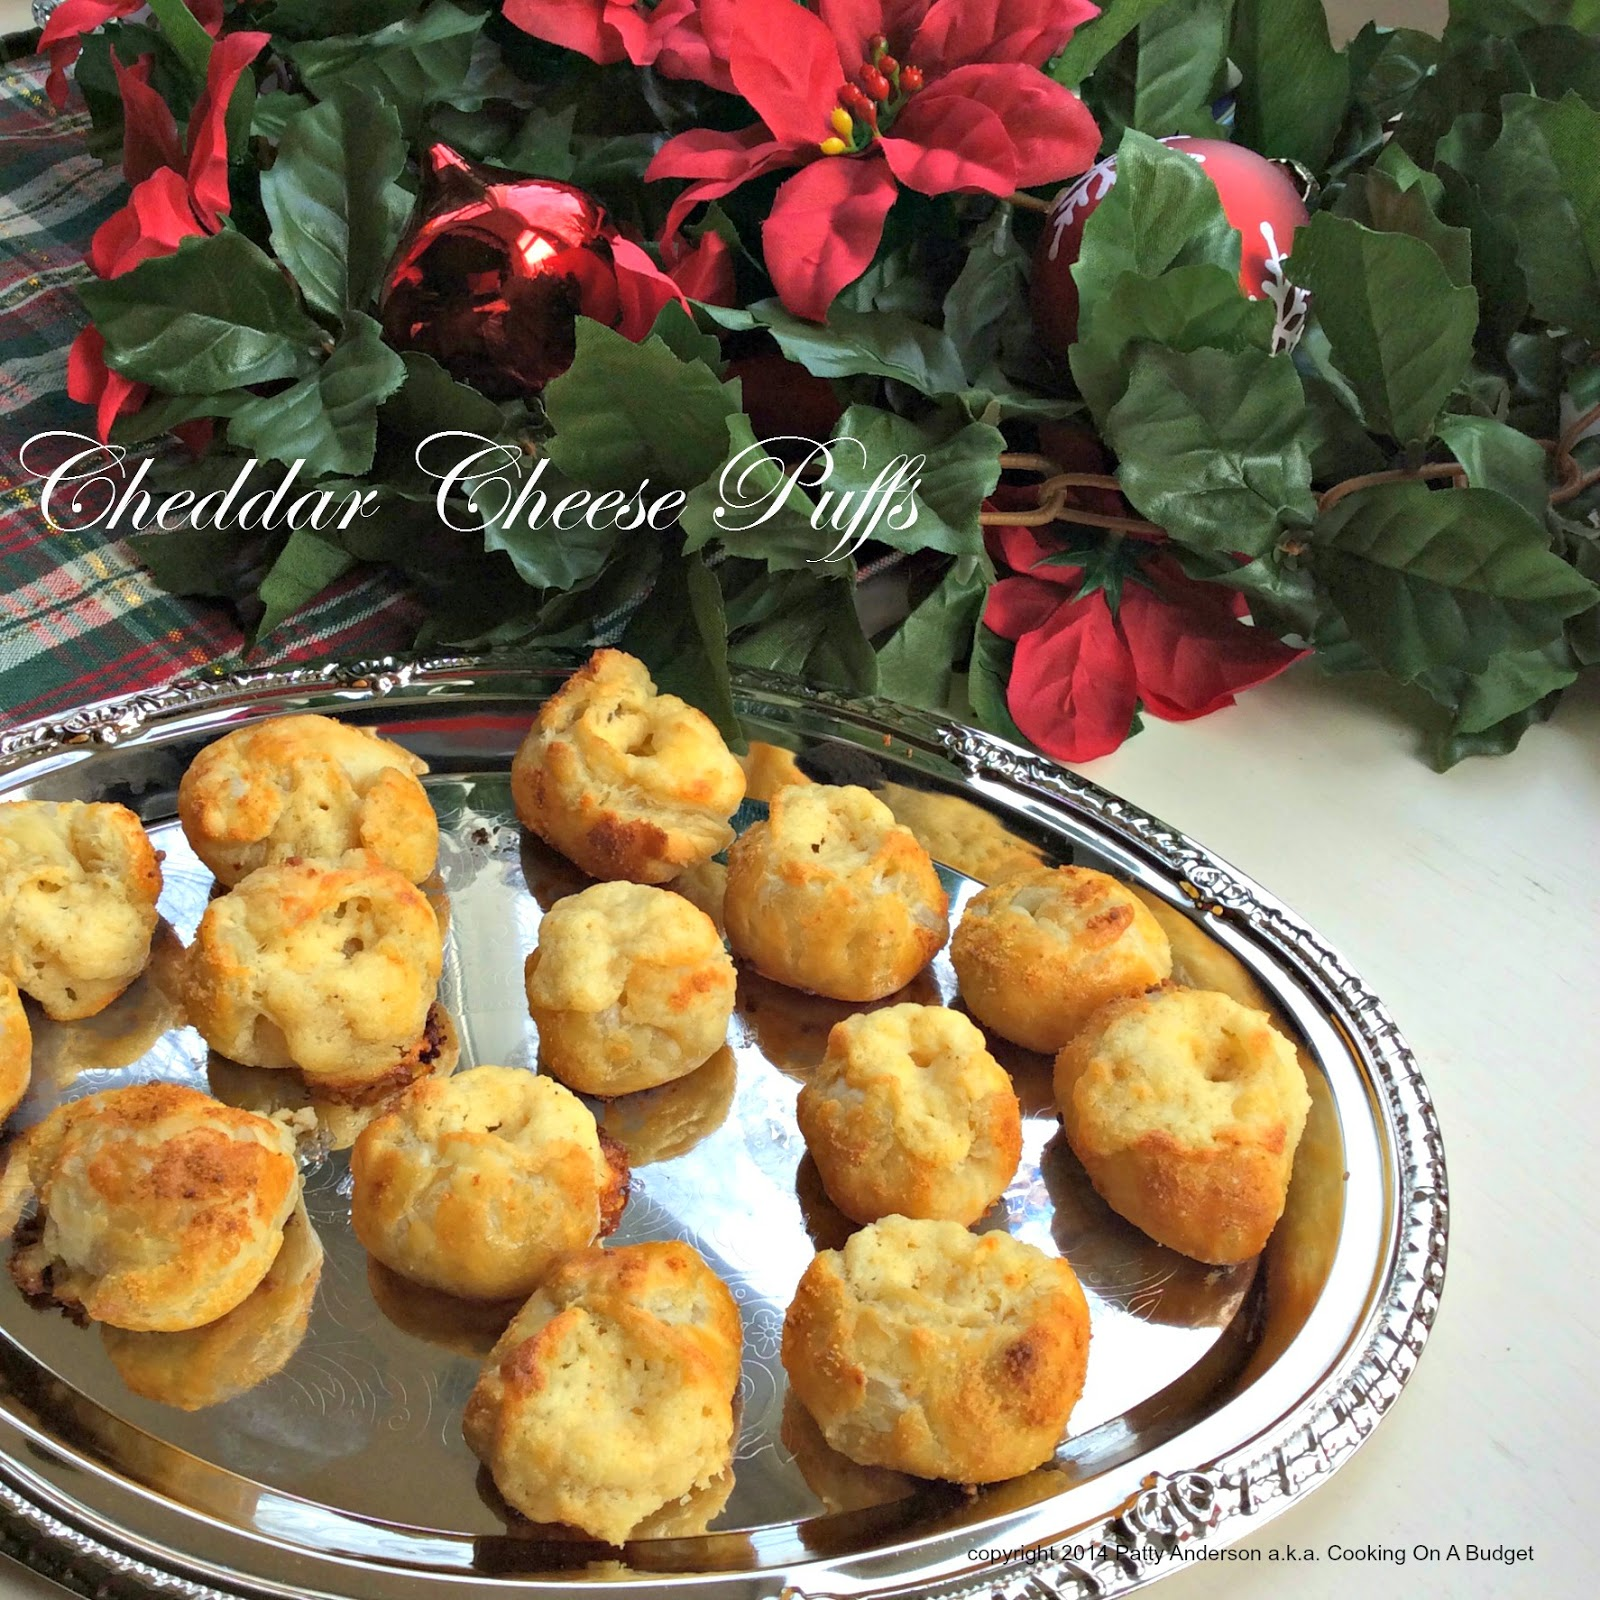 Cooking On A Budget: Cheddar Cheese Puffs